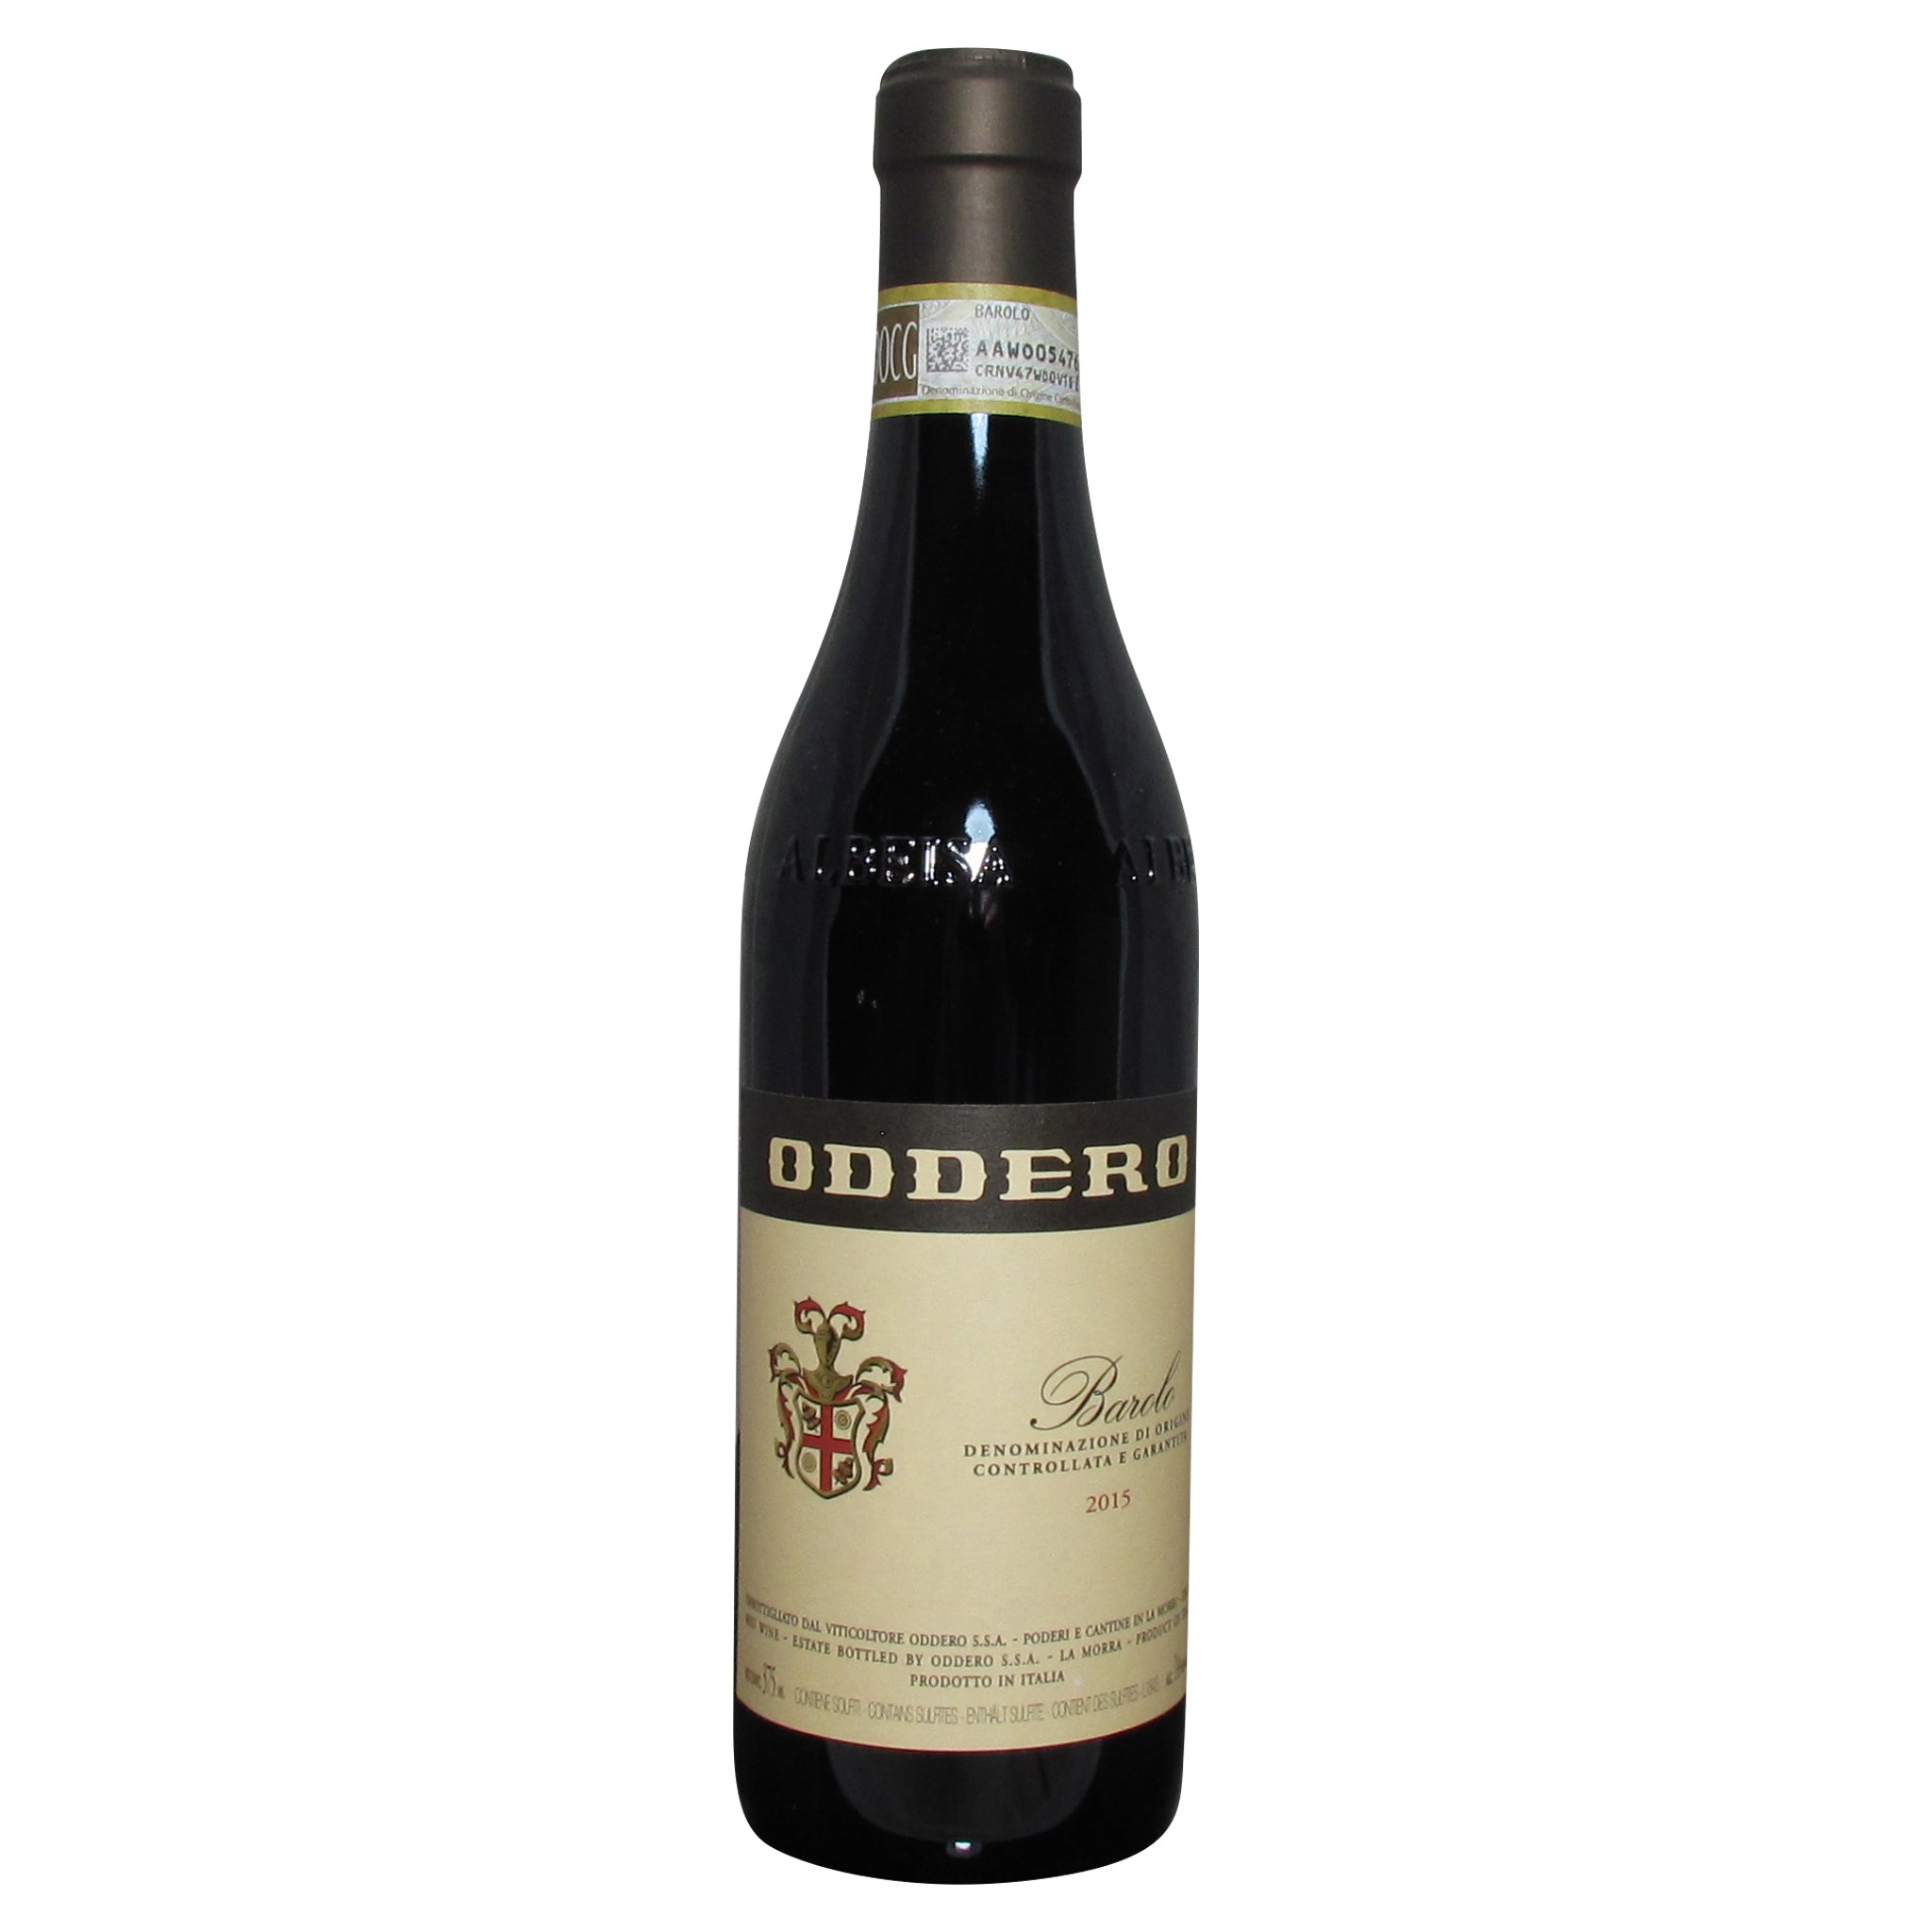 (375ml) 2015 Oddero Barolo